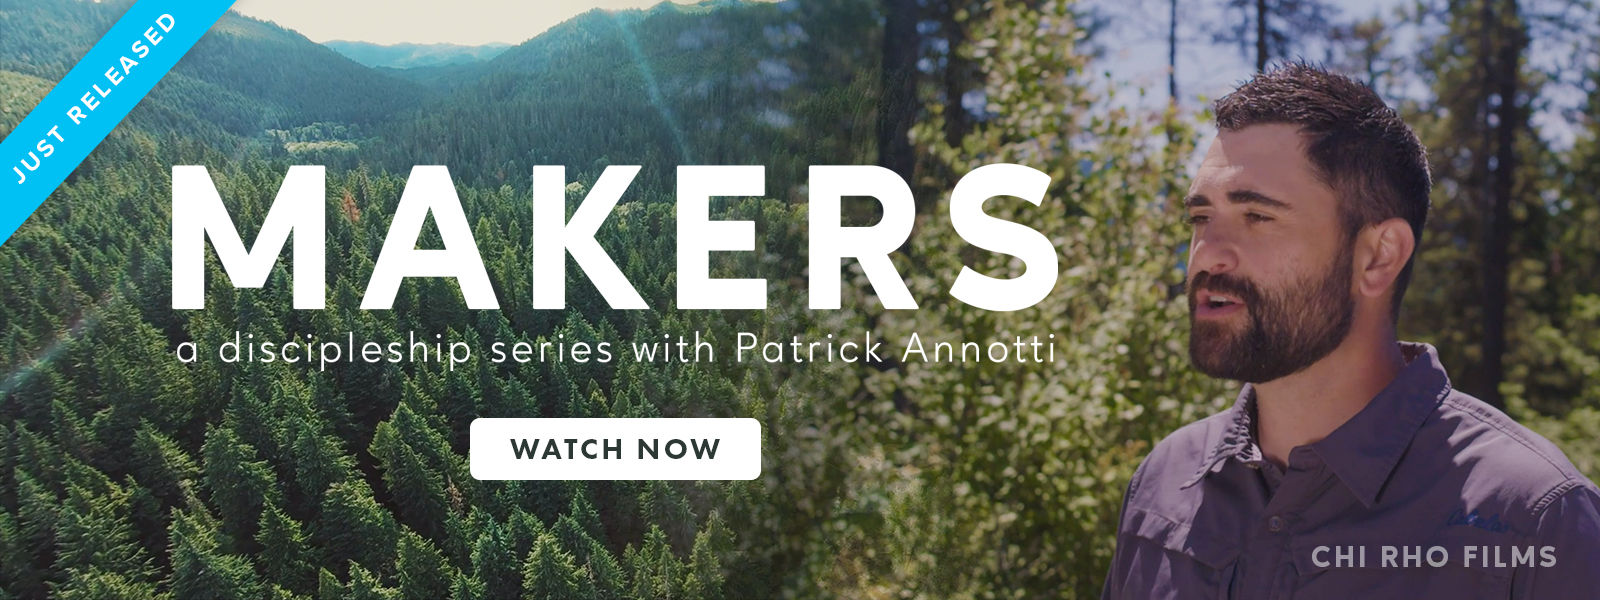 MAKERS Discipleship Series